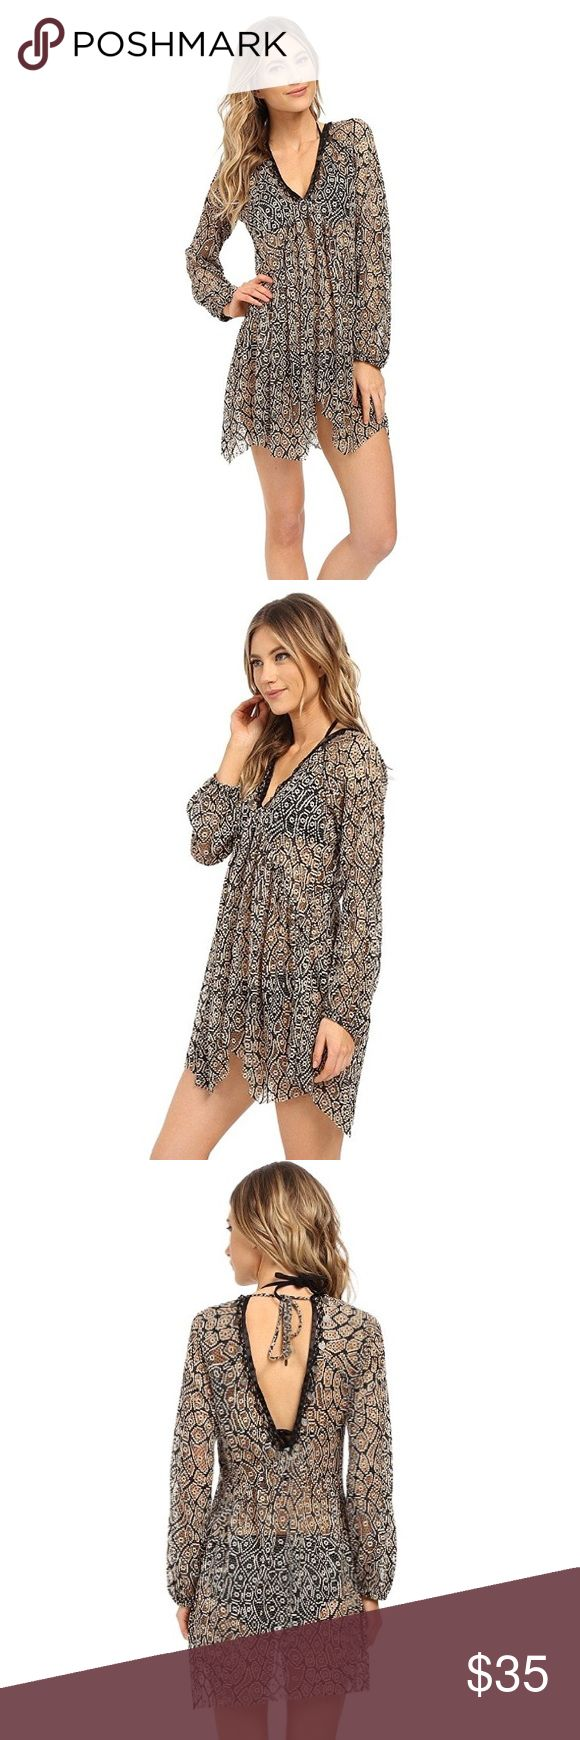 BECCA Coverup This is brand new, with tags, Mother Earth Long Sleeve Tunic. It is a perfect beach cover up for the summer! It is a M-L size. BECCA Swim Coverups